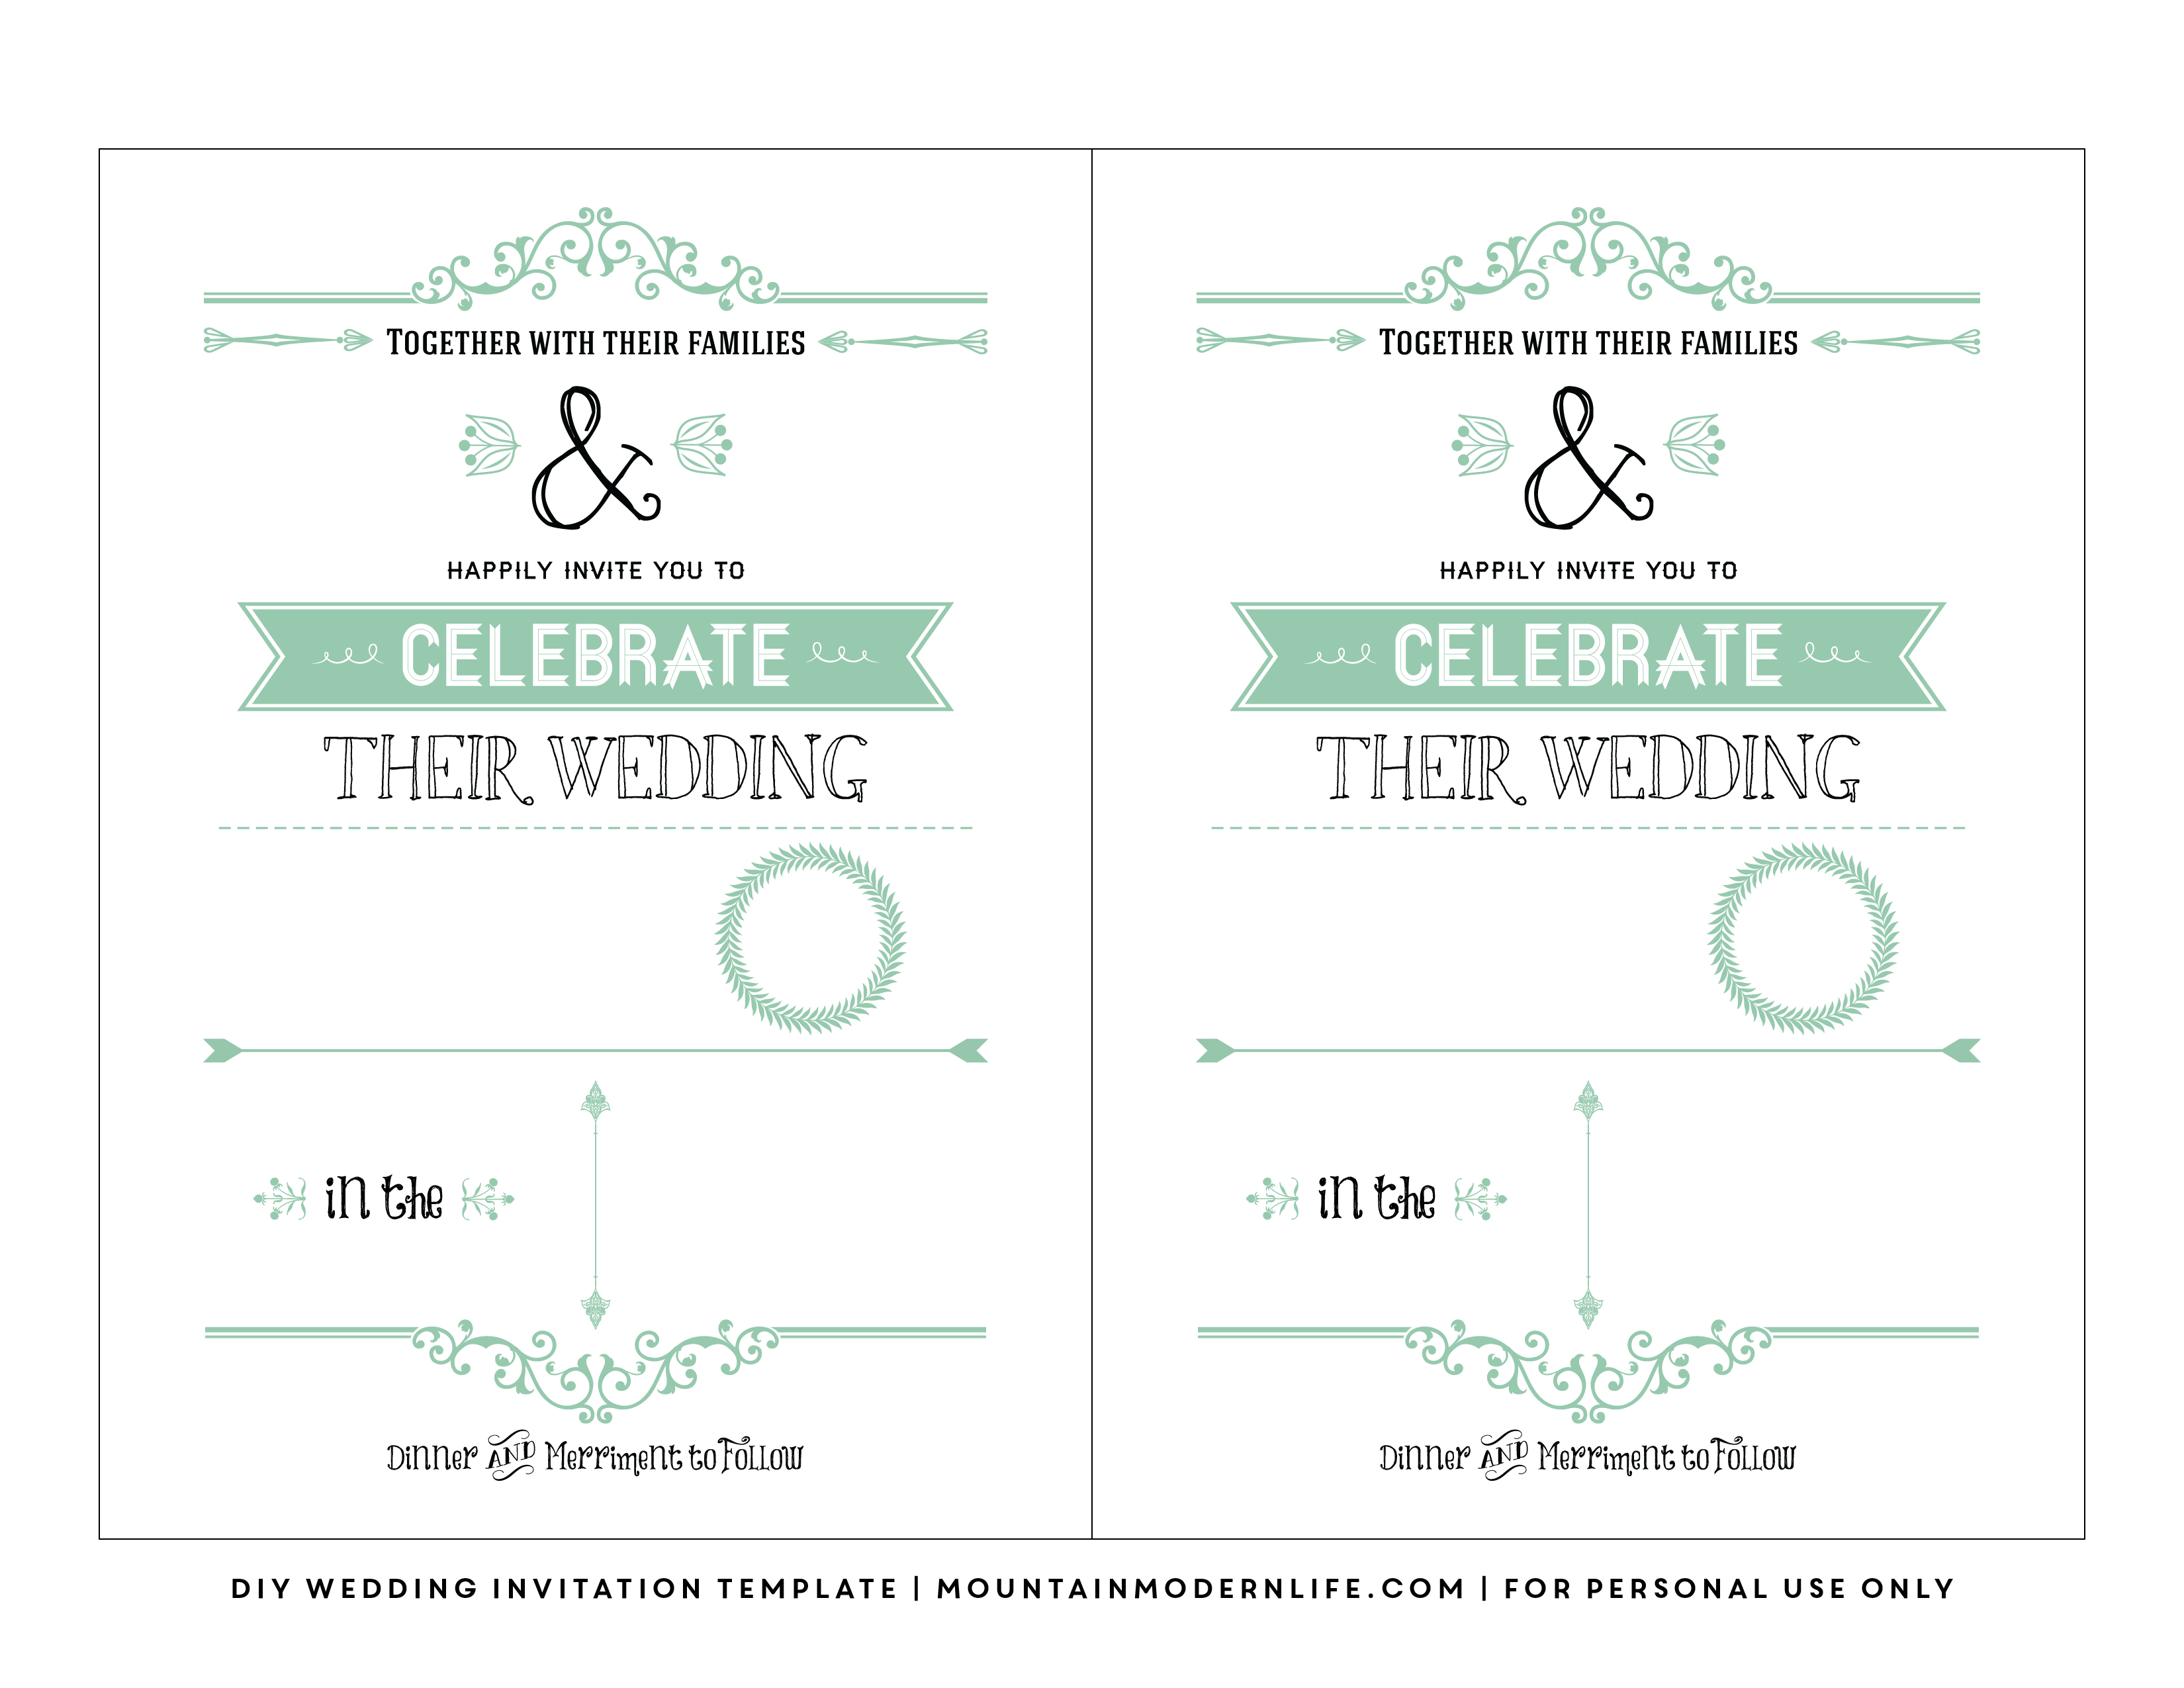 Free Wedding Invitation Template | Mountainmodernlife - Printable Maps For Wedding Invitations Free